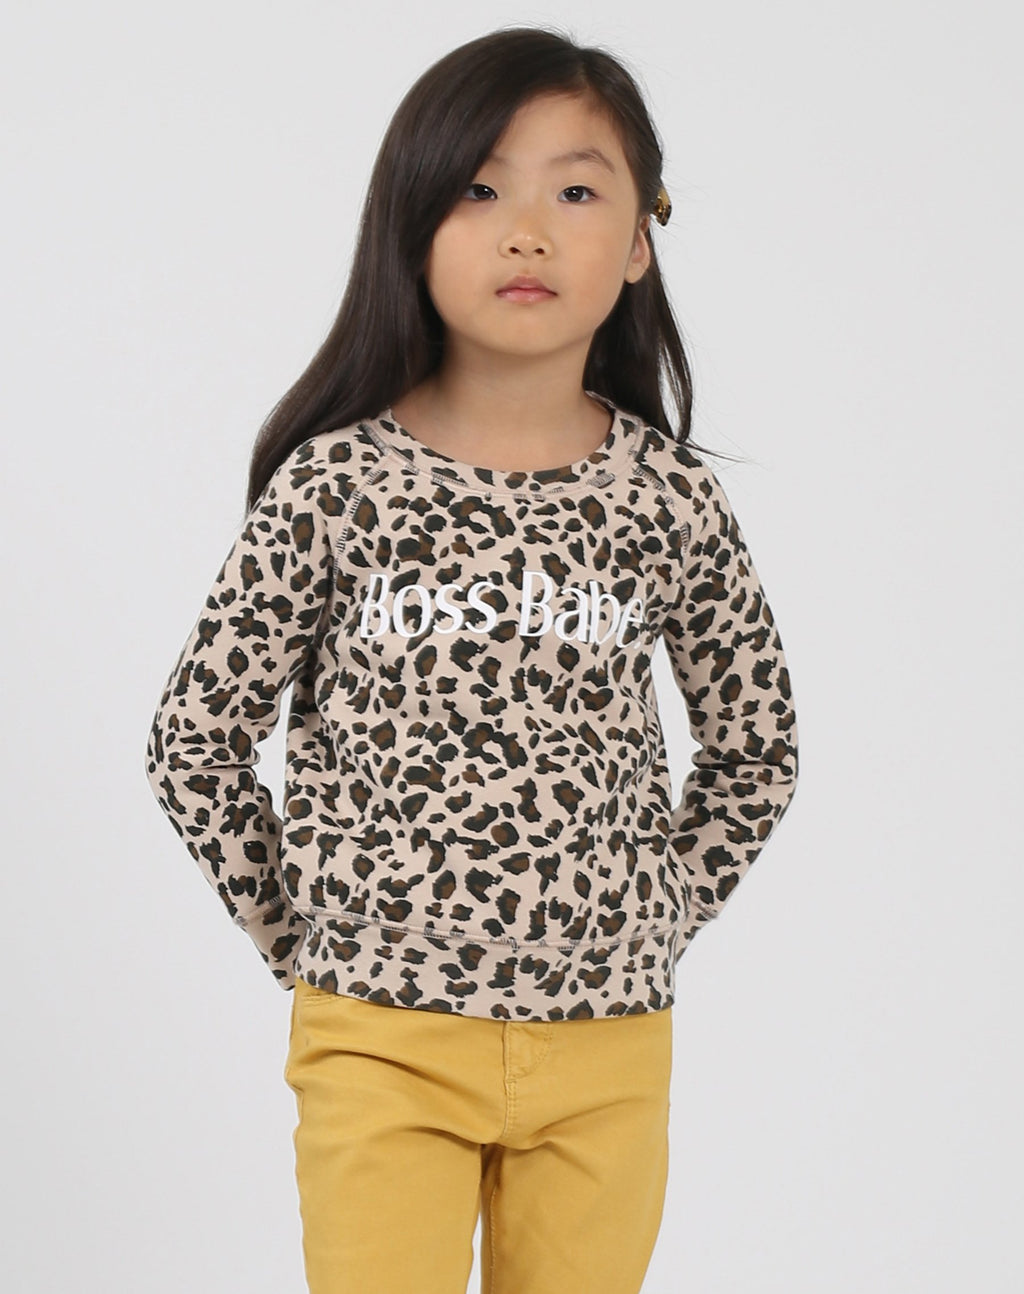 """BOSS BABE"" Little Babes Crew Neck Sweatshirt 